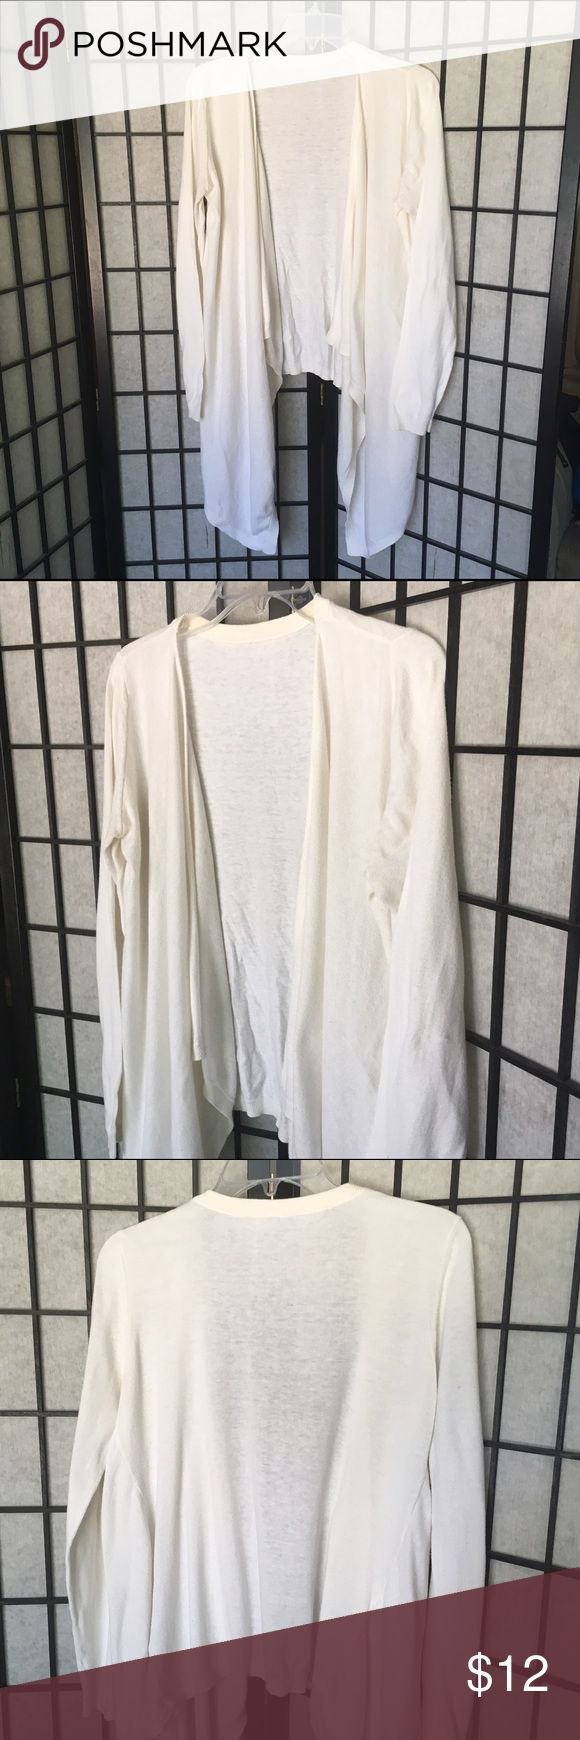 """No Tags plus size Cover up sweater No tags cream or off white cover up sweater long in front and short on back Fits Size X Large to XXL In pre Owned good condition :FB  Approx. Laying flat: Armpit to Armpit: 24.5"""" Shoulder to Bottom Hem: 28""""  Feel free to ask any questions. Sorry No trades, no modeling. Check out the other items in my closet. Bundles are 20% off 3 + items.  I consider all offers!   Happy POSHING!! No Tags Sweaters Shrugs & Ponchos"""